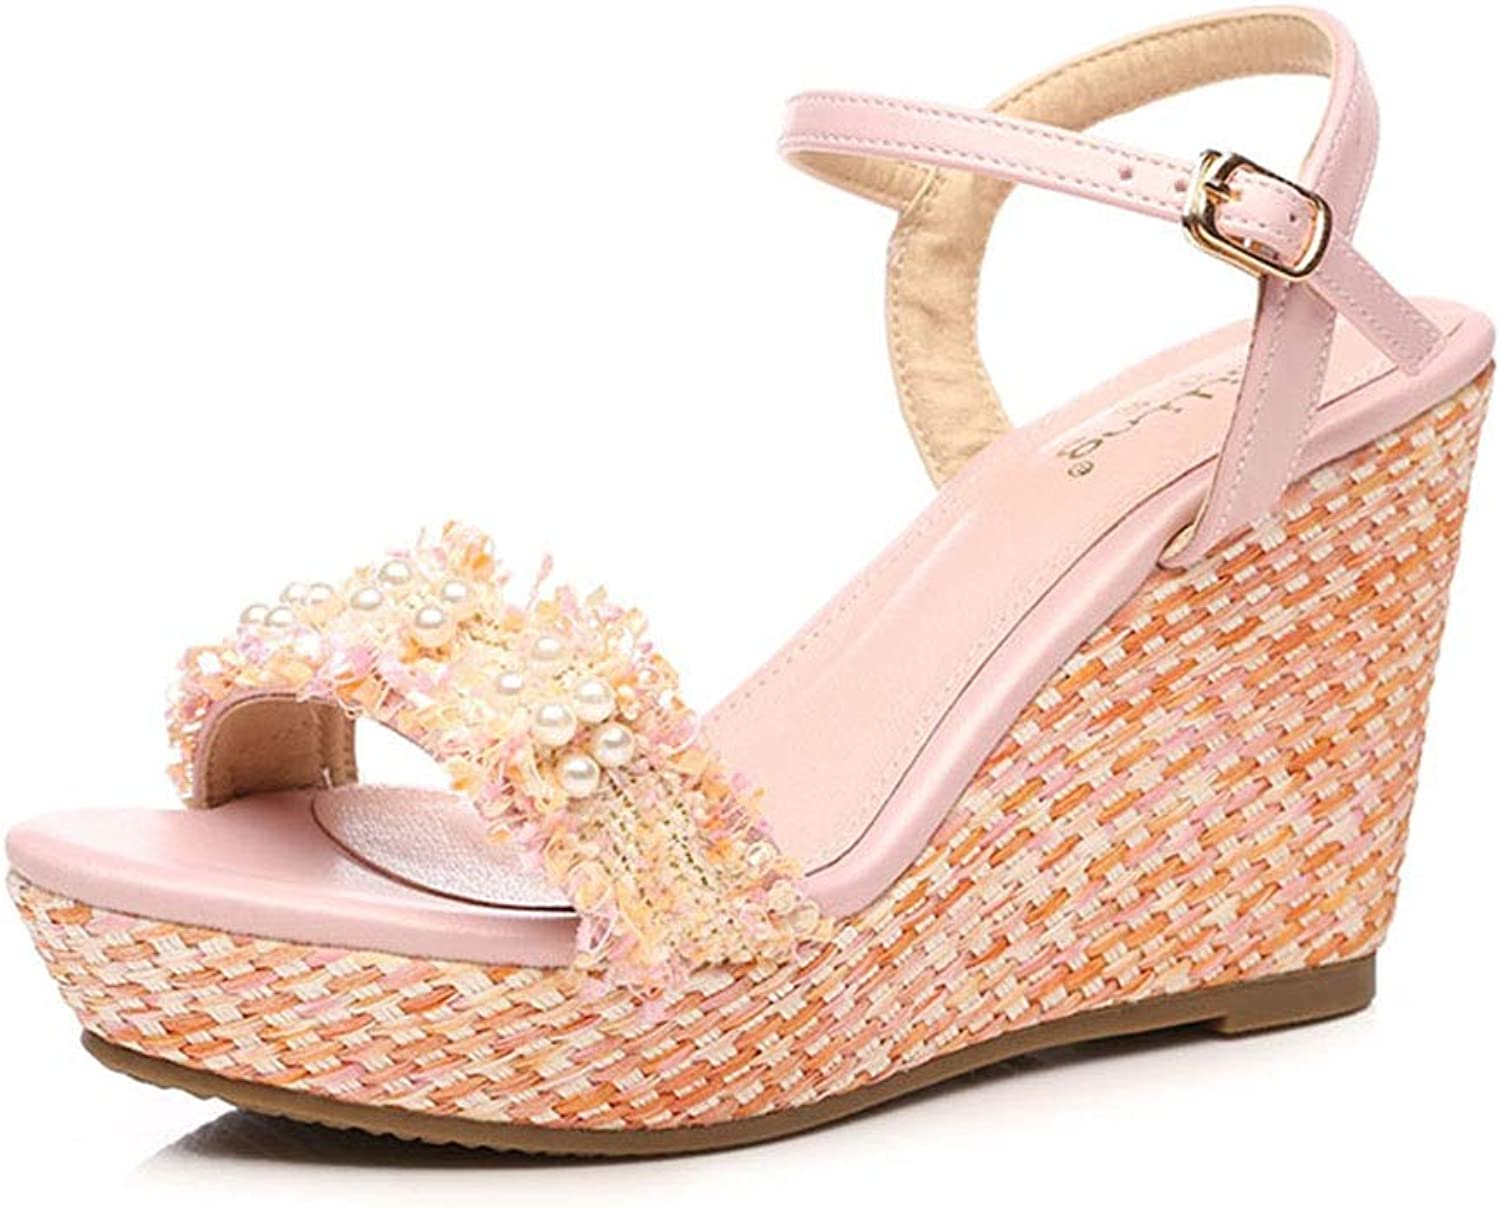 Sandals Girls shoes Sandals Summer Sexy Sandals Pearl Fringed Wedge Sandals Fashion Small Size Women's shoes, High Heels 9 cm (color   orange, Size   36)